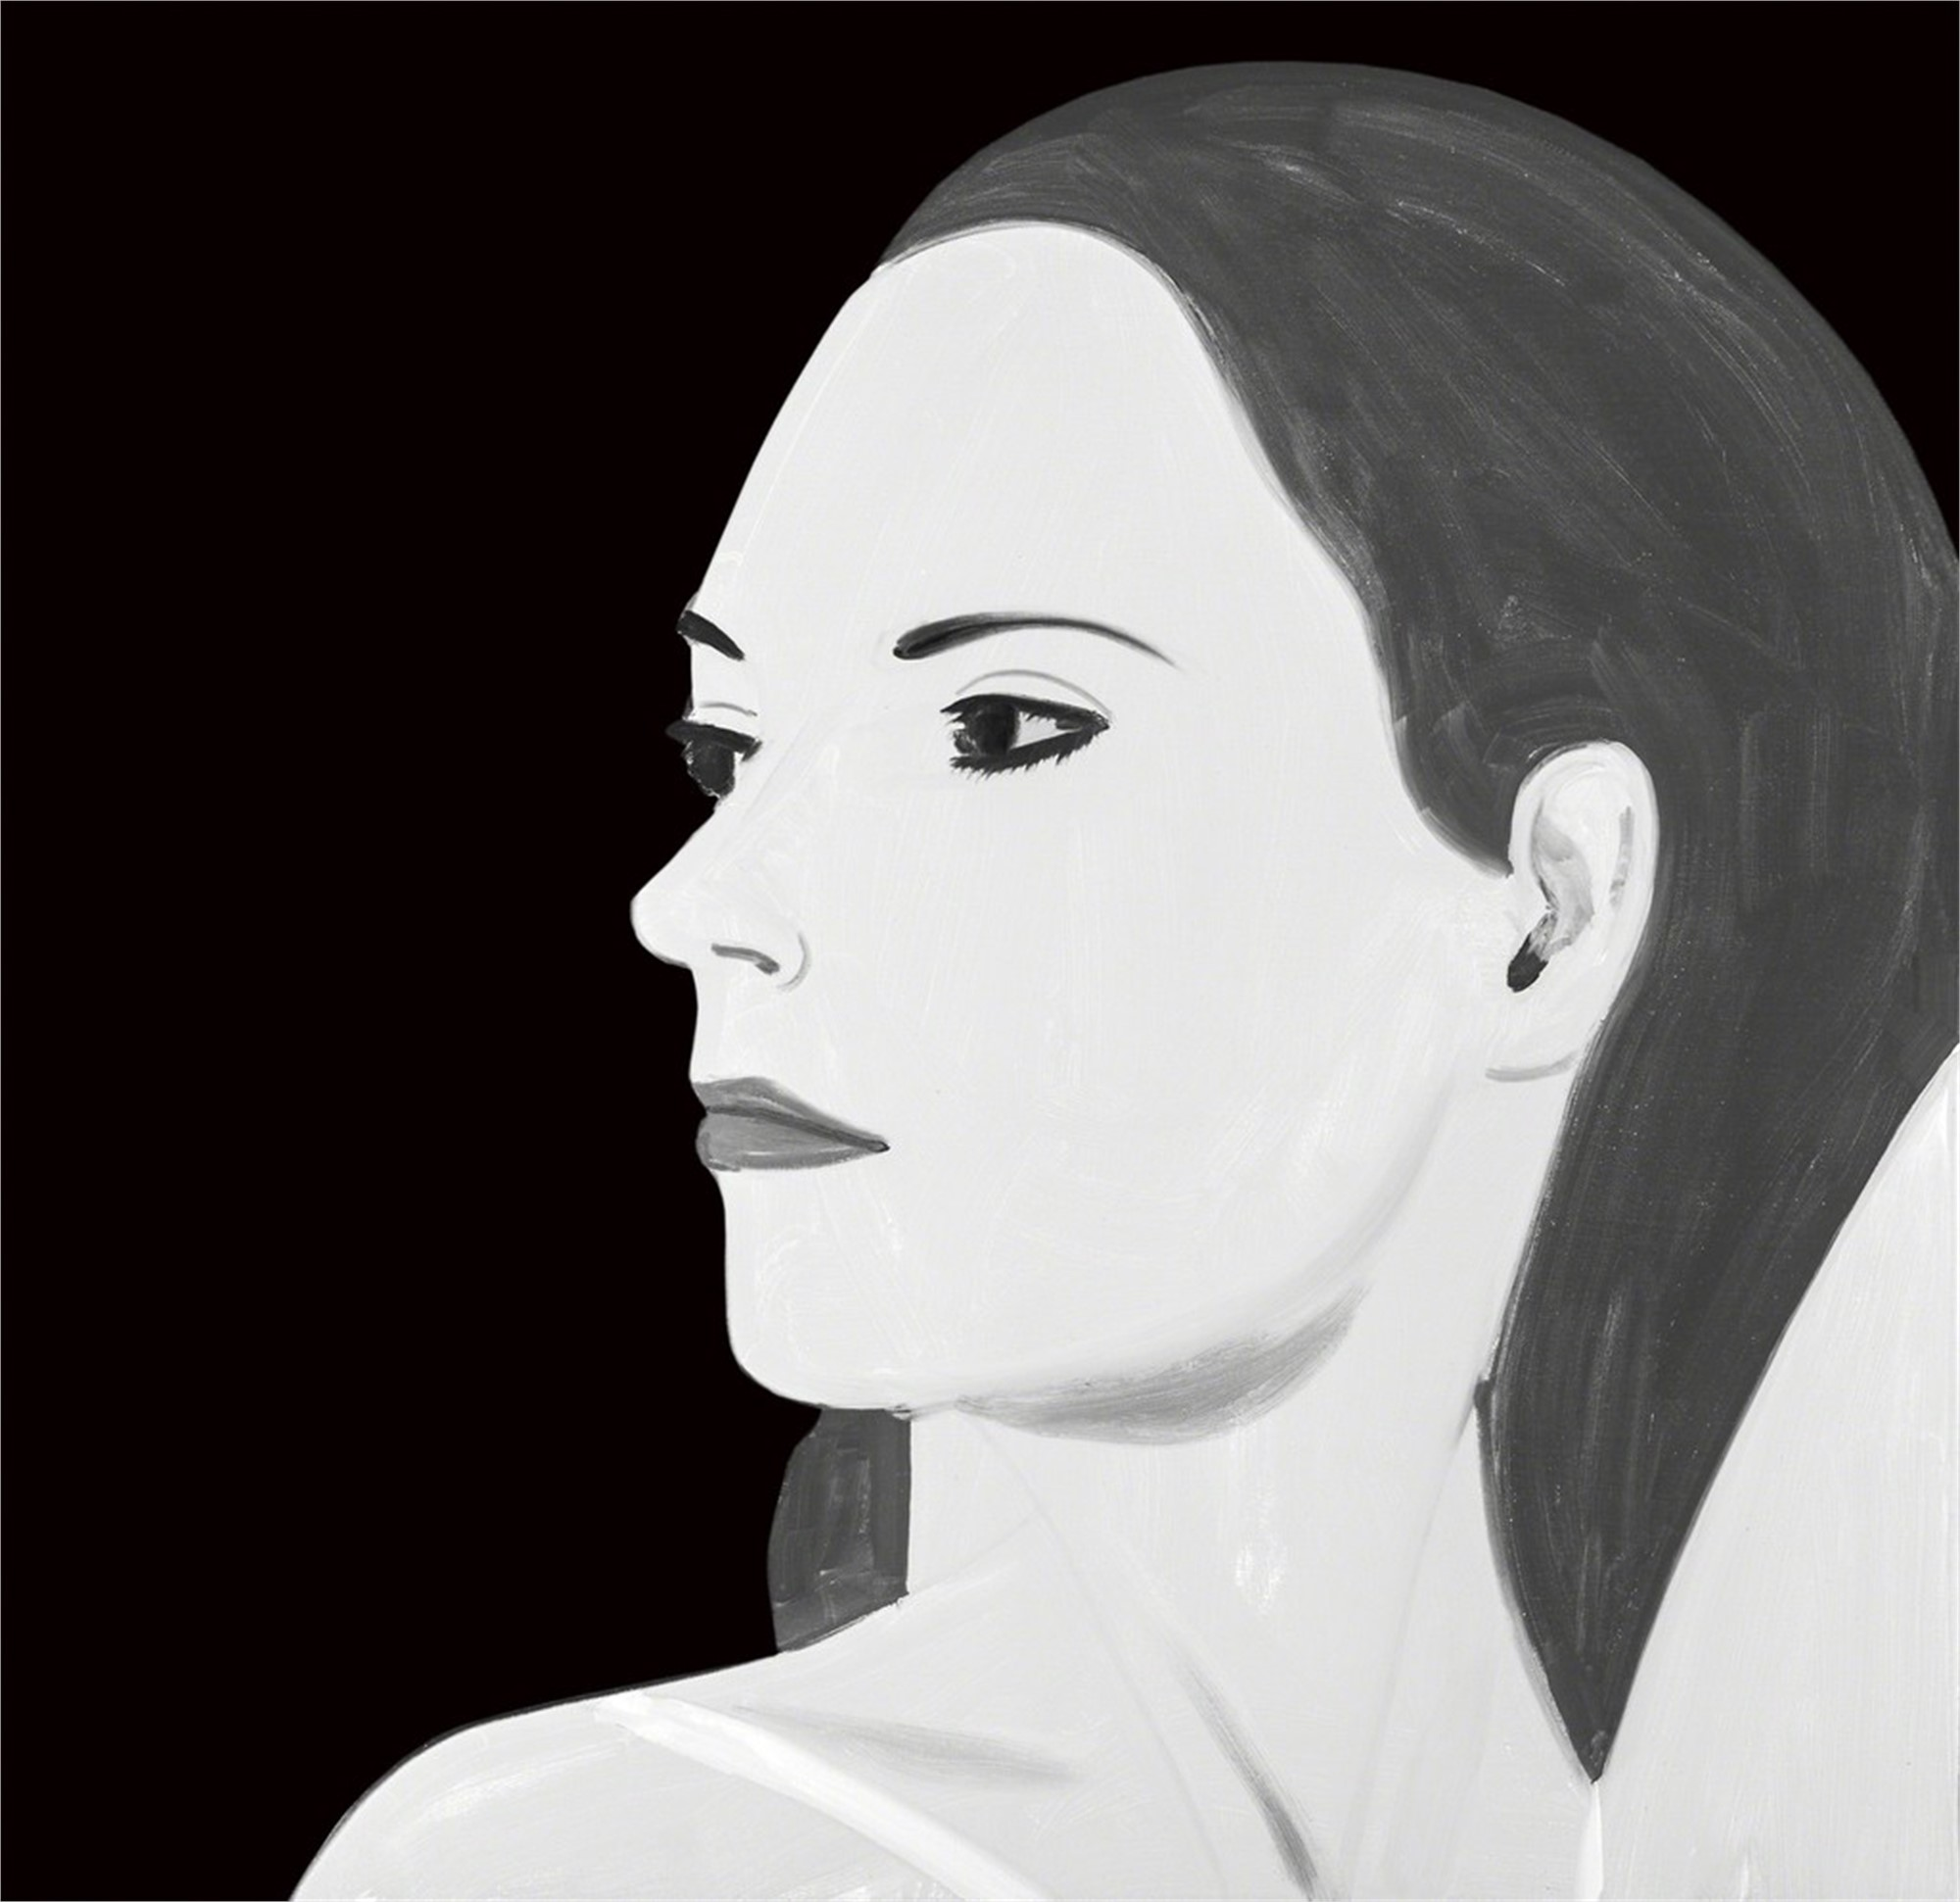 Laura 5 by Alex Katz